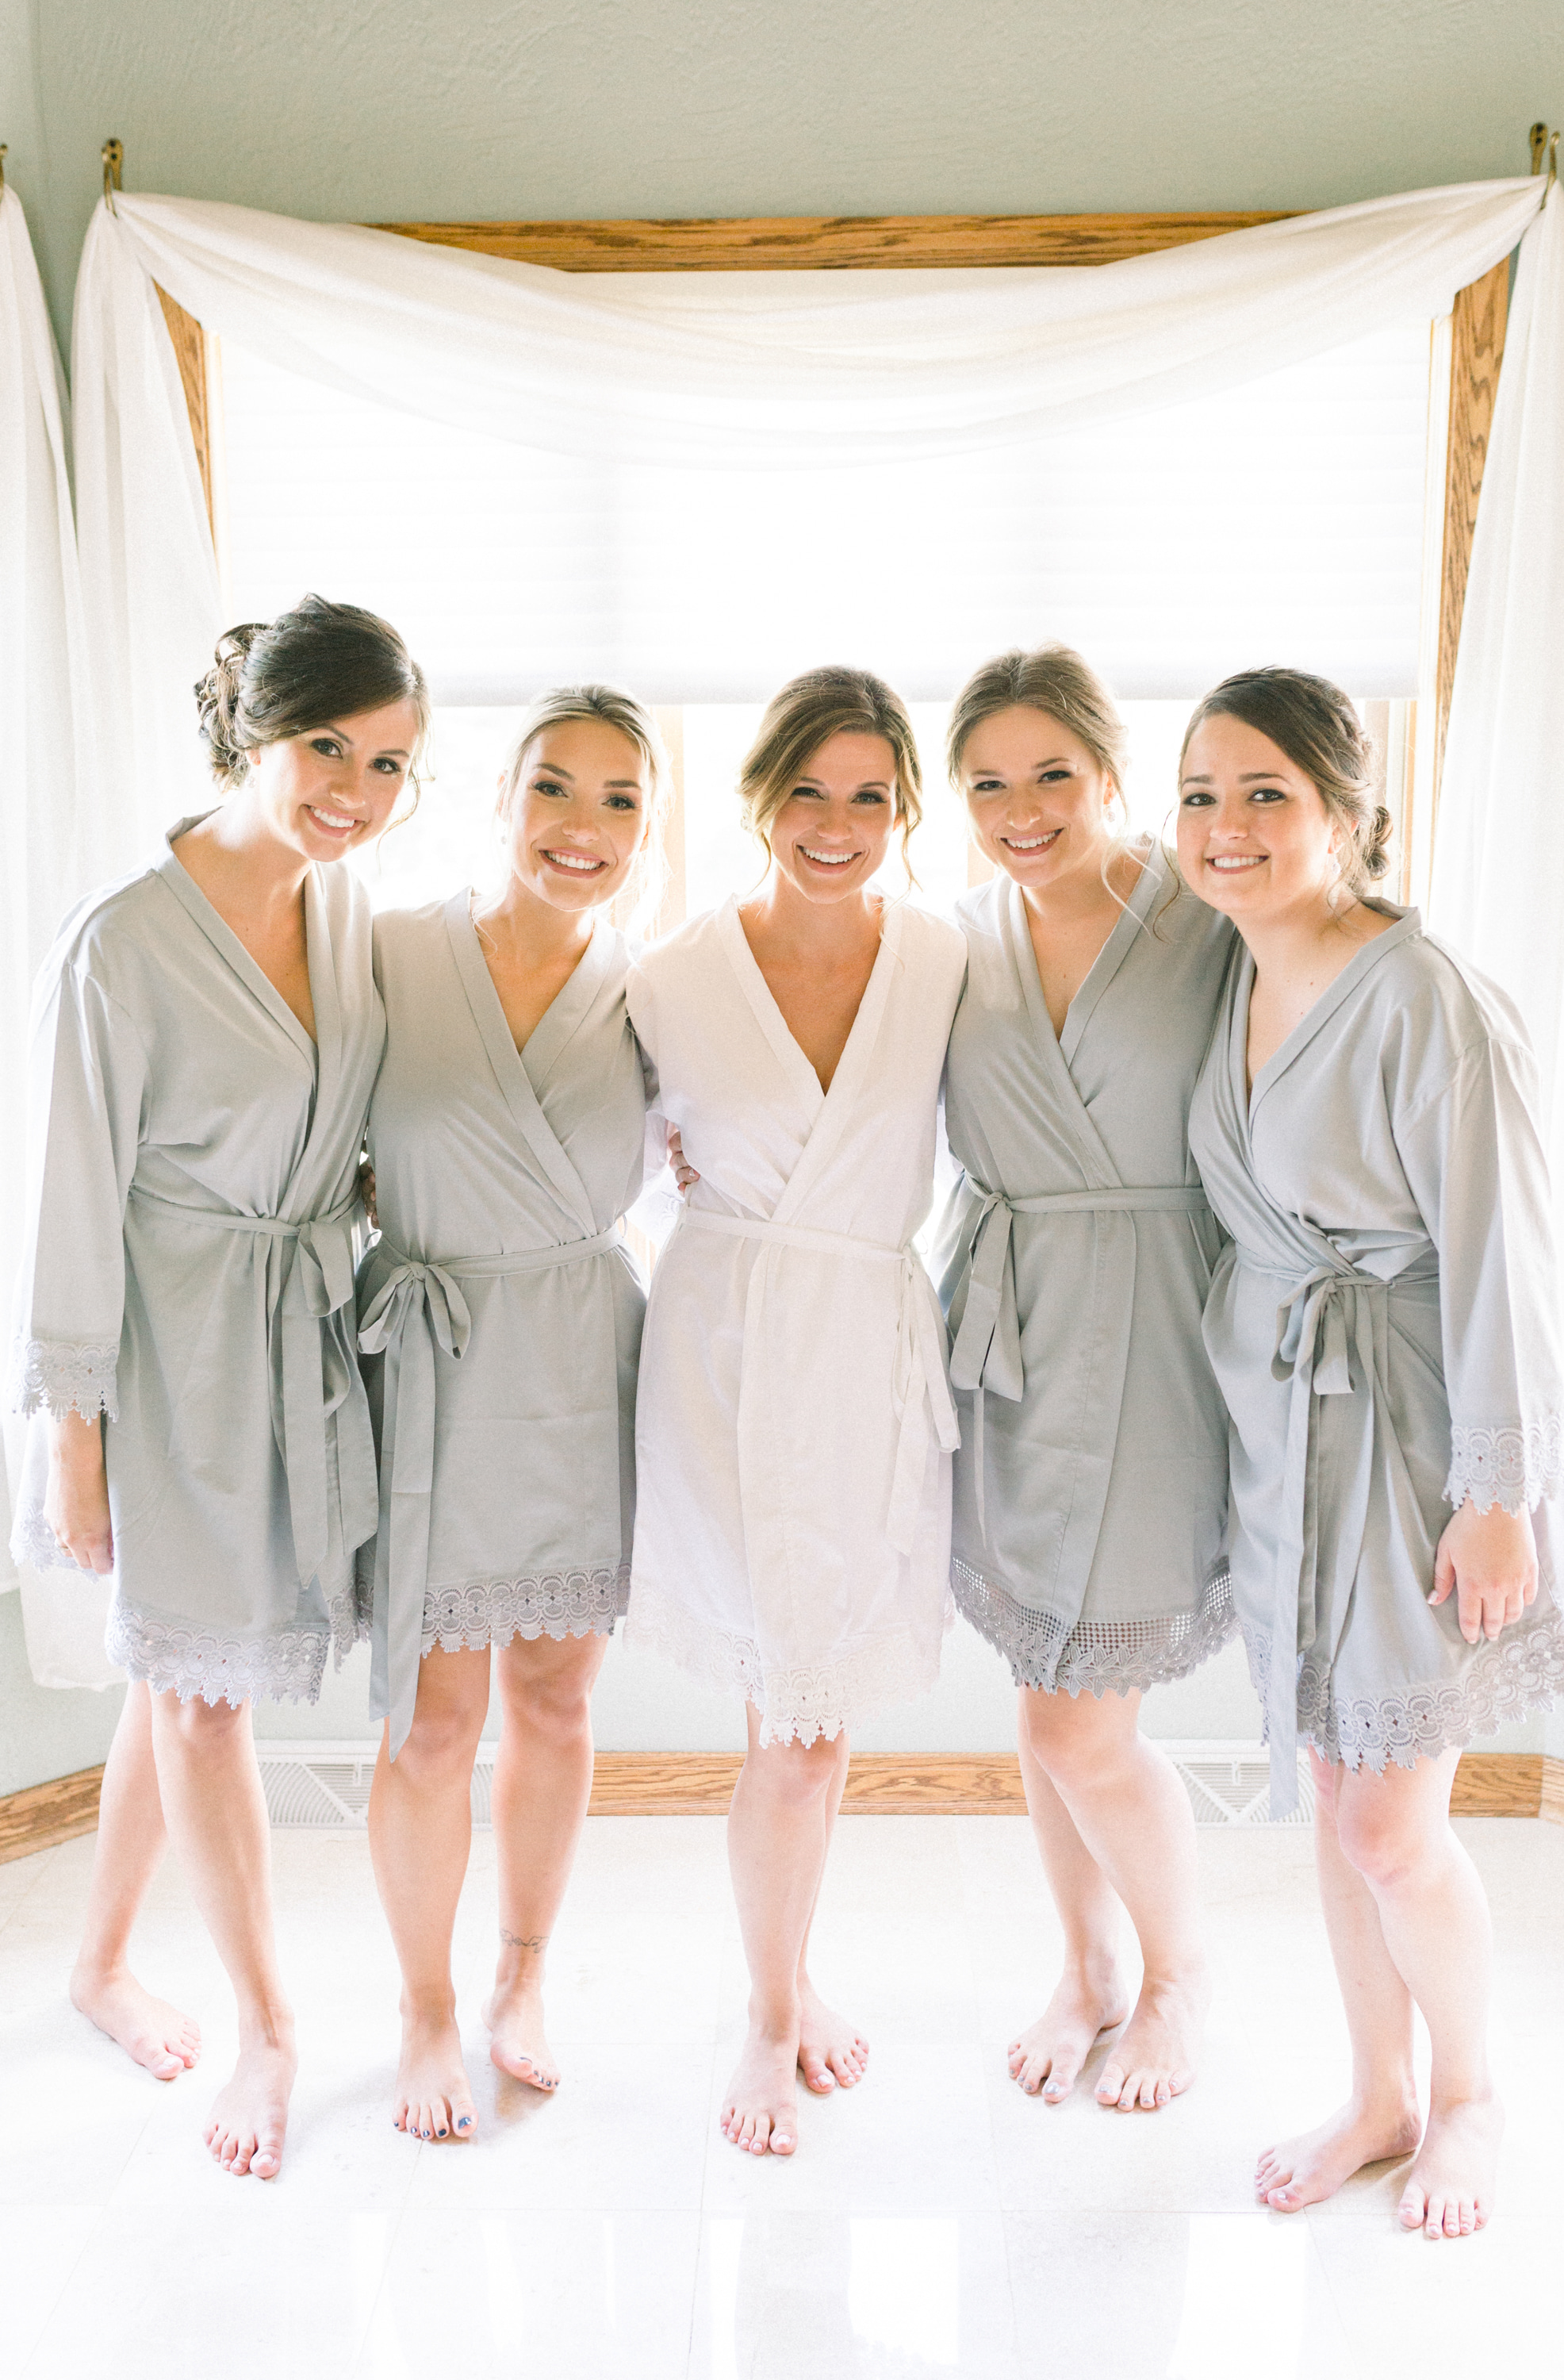 Bride and bridesmaids getting ready for Pittsburgh wedding planned by Exhale Events. Find more wedding inspiration at exhale-events.com!